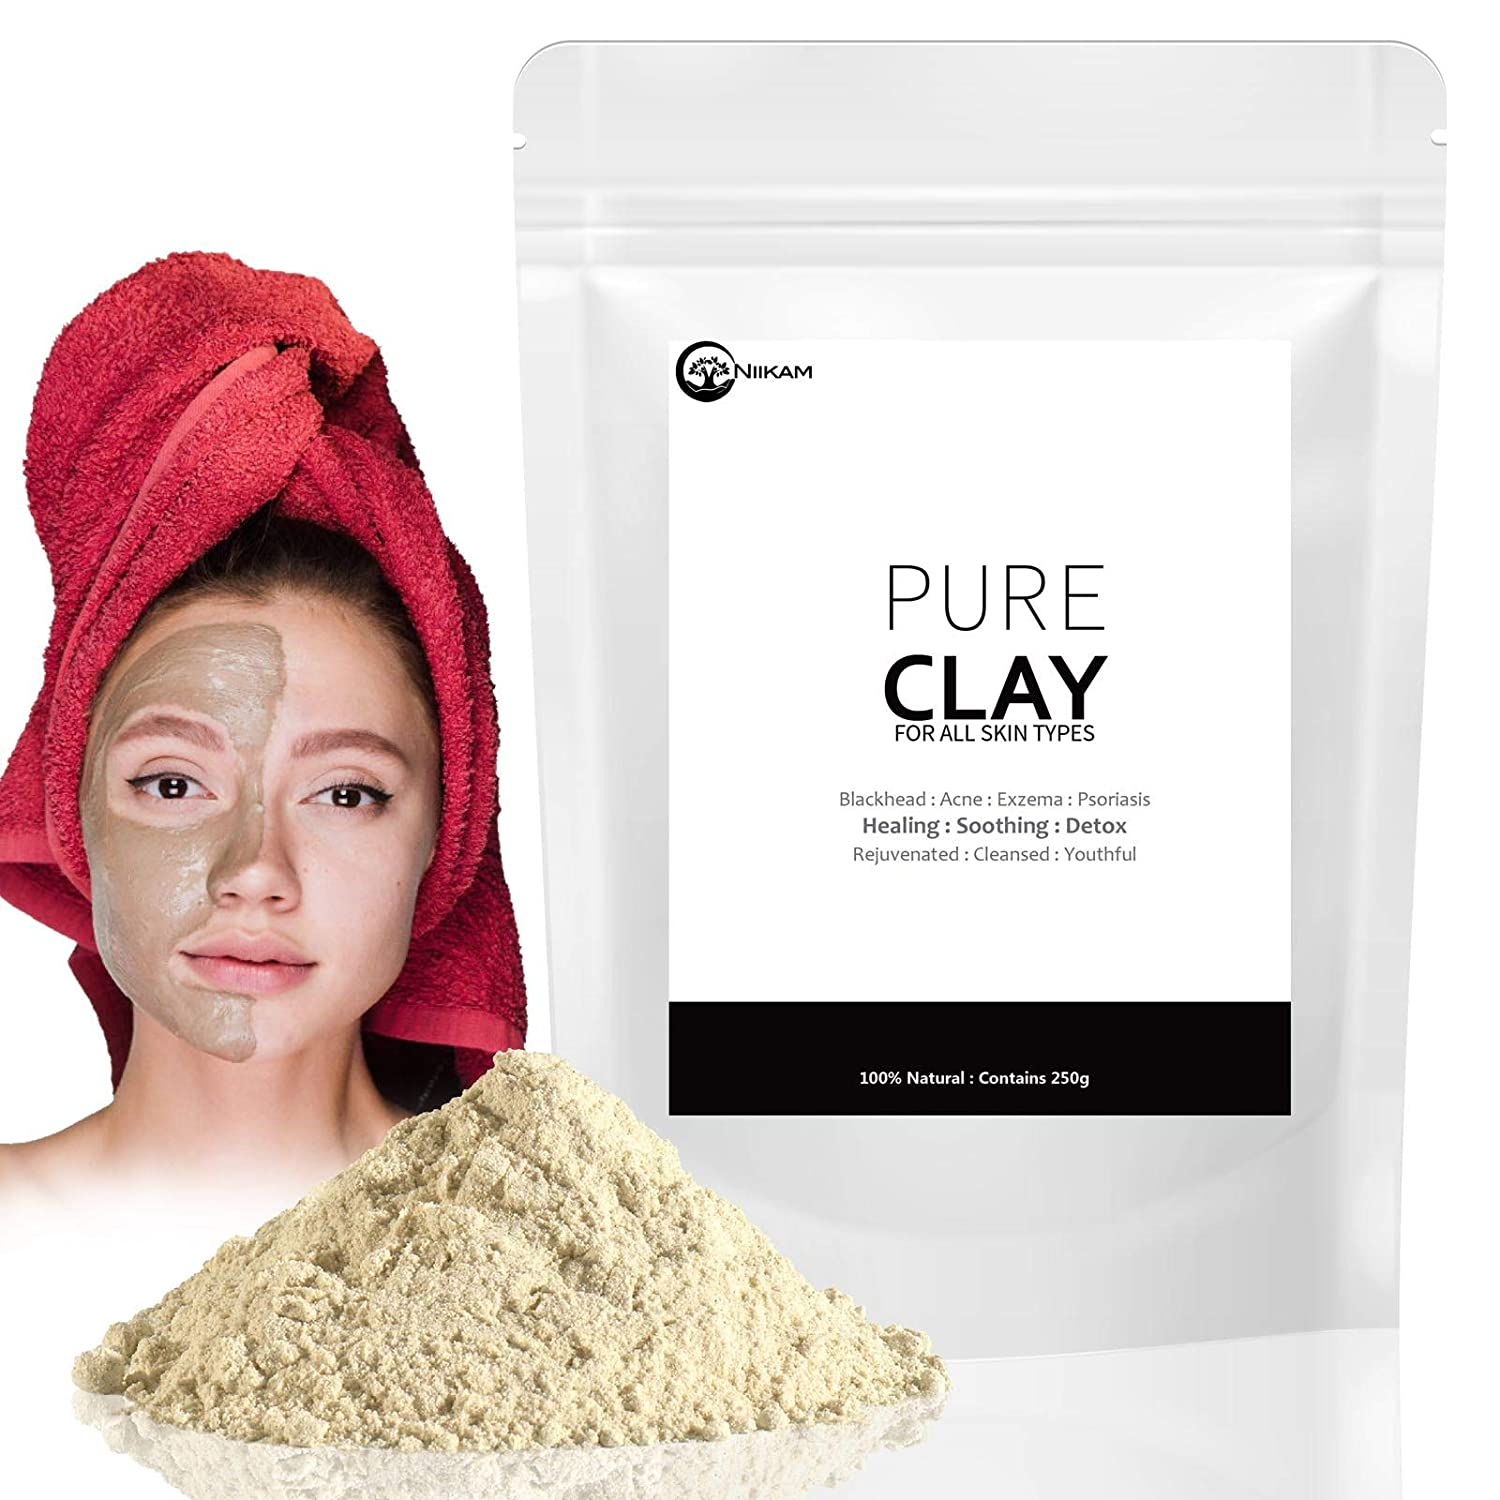 Bentonite Clay Healing Clay Clay Mask | Blackheads Scar Acne Spot Anti Aging Blemish | Men & Women 250g Niikam LTD